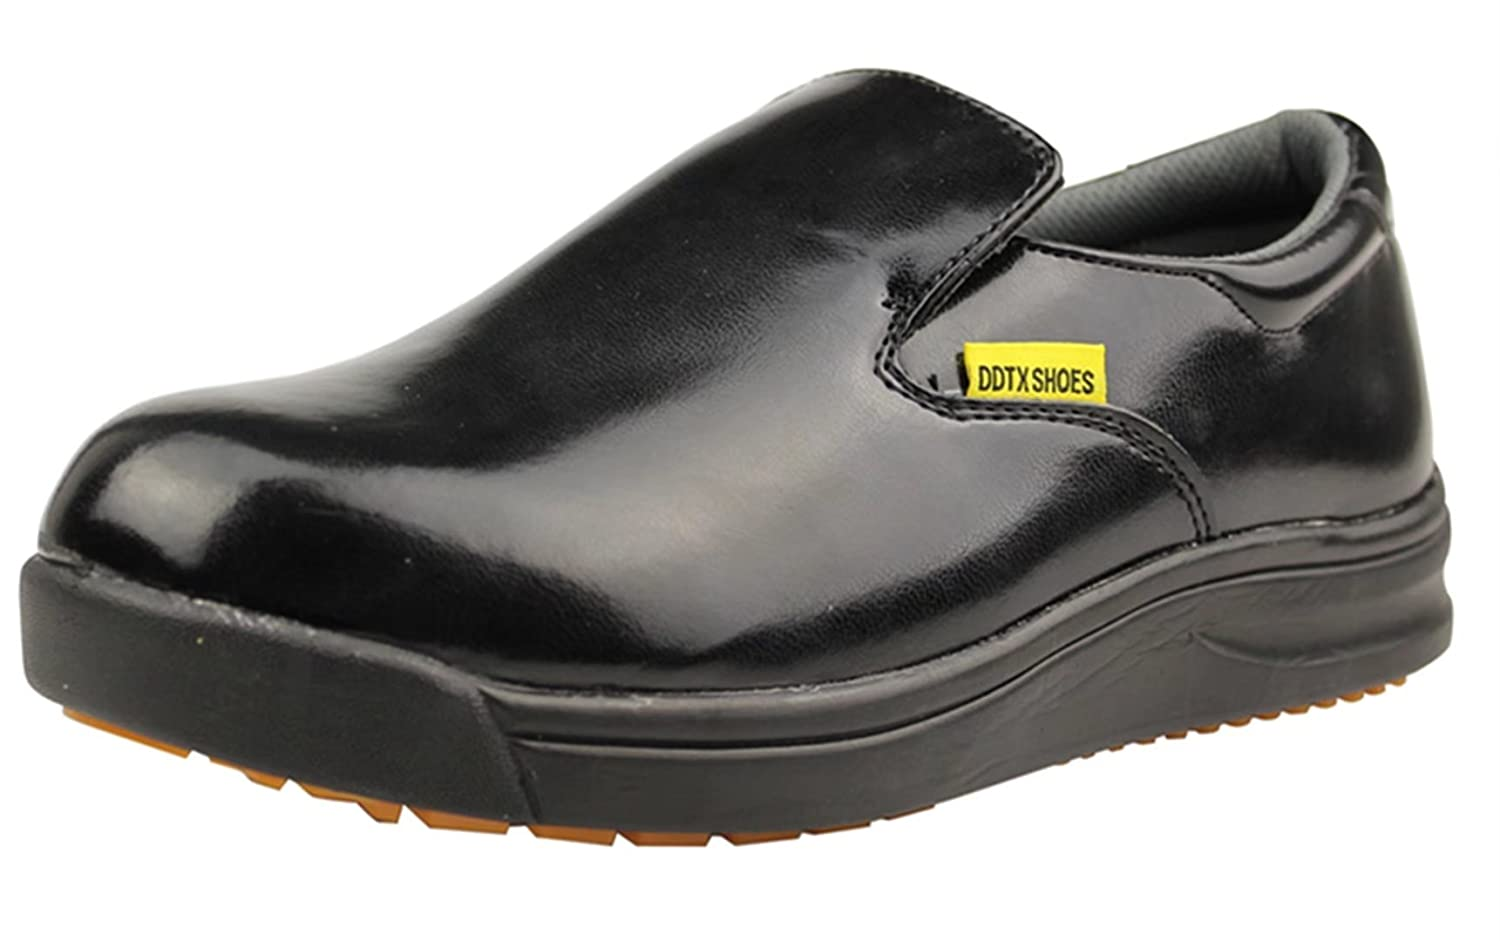 safetstep shoes s comfortable most comforter black payless women slip chef womens clog resistant